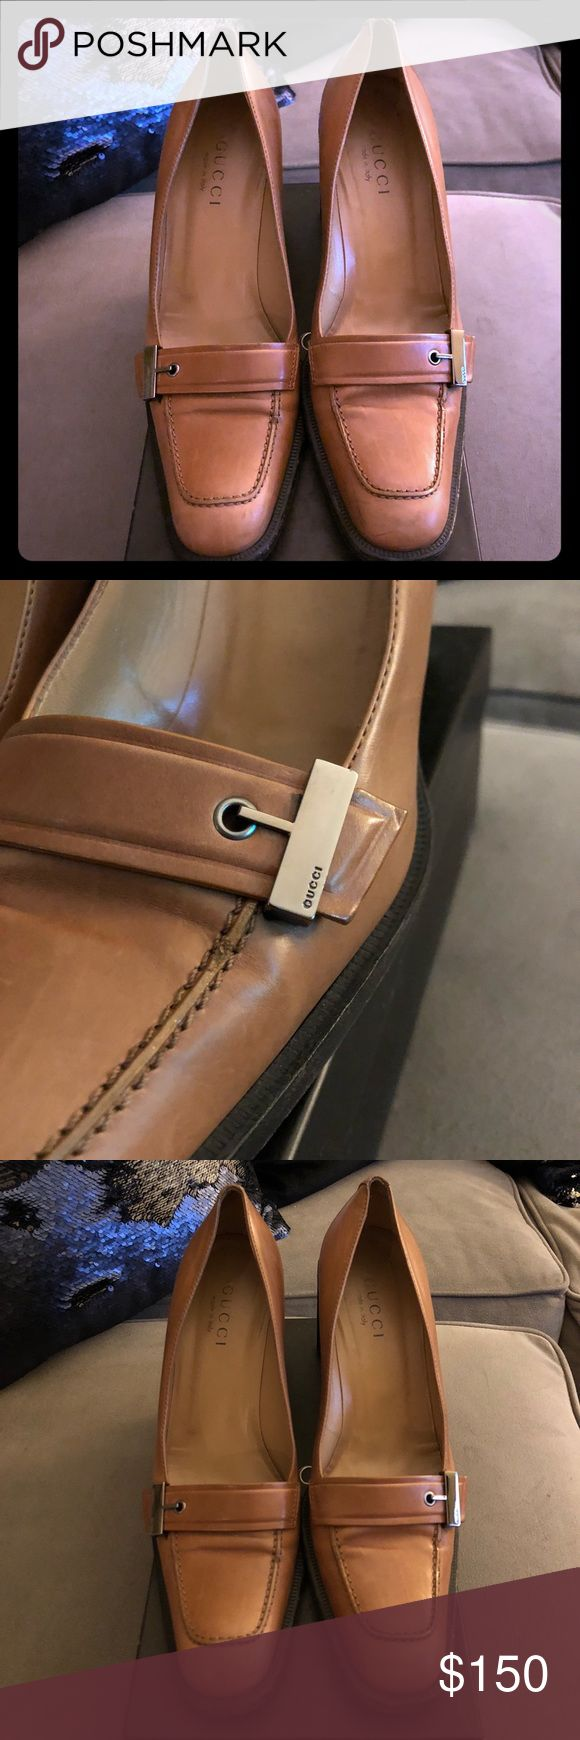 "Gucci Amber Dress Shoes Gently used.  Amber / tan colored leather. Silver hardware says Gucci on it.  3"" heel. A good shoe polish would make these look new!  They look great with dress pants or skirt. Size 9. Fits like an 8.5  Comes with original box and Gucci Logo dust bag. Gucci Shoes Heels"